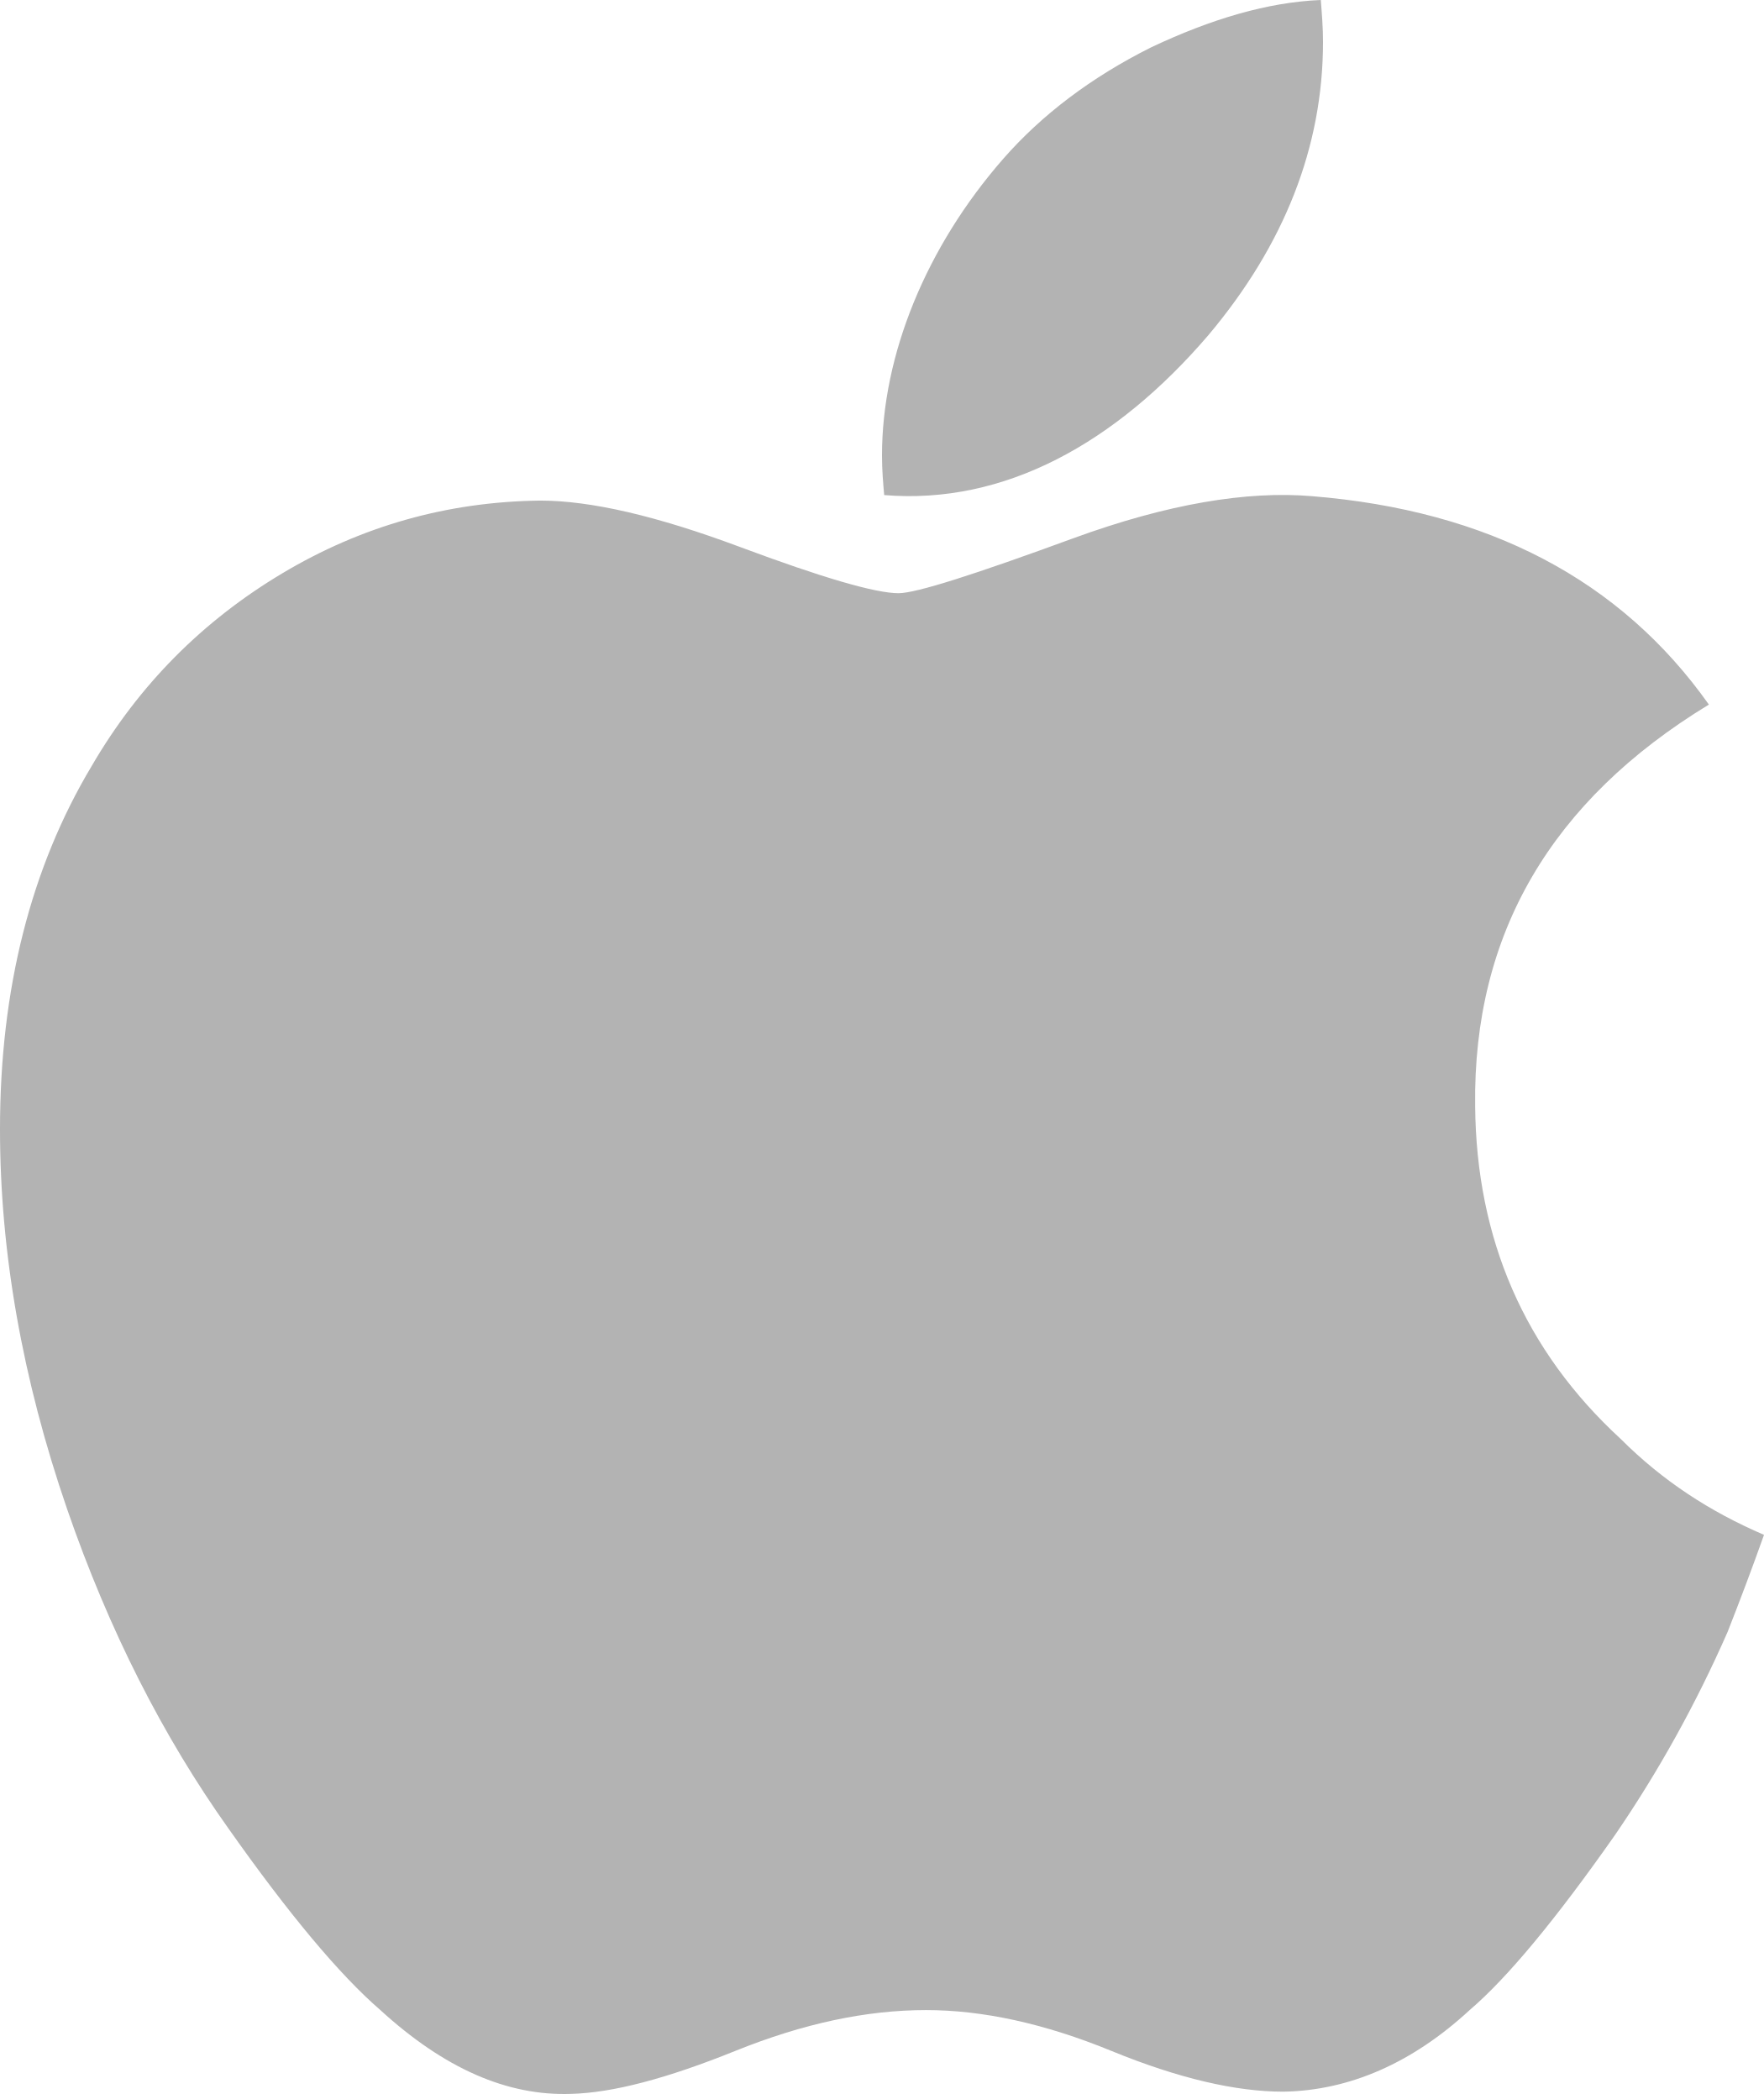 apple logo 2 - Apple Logo